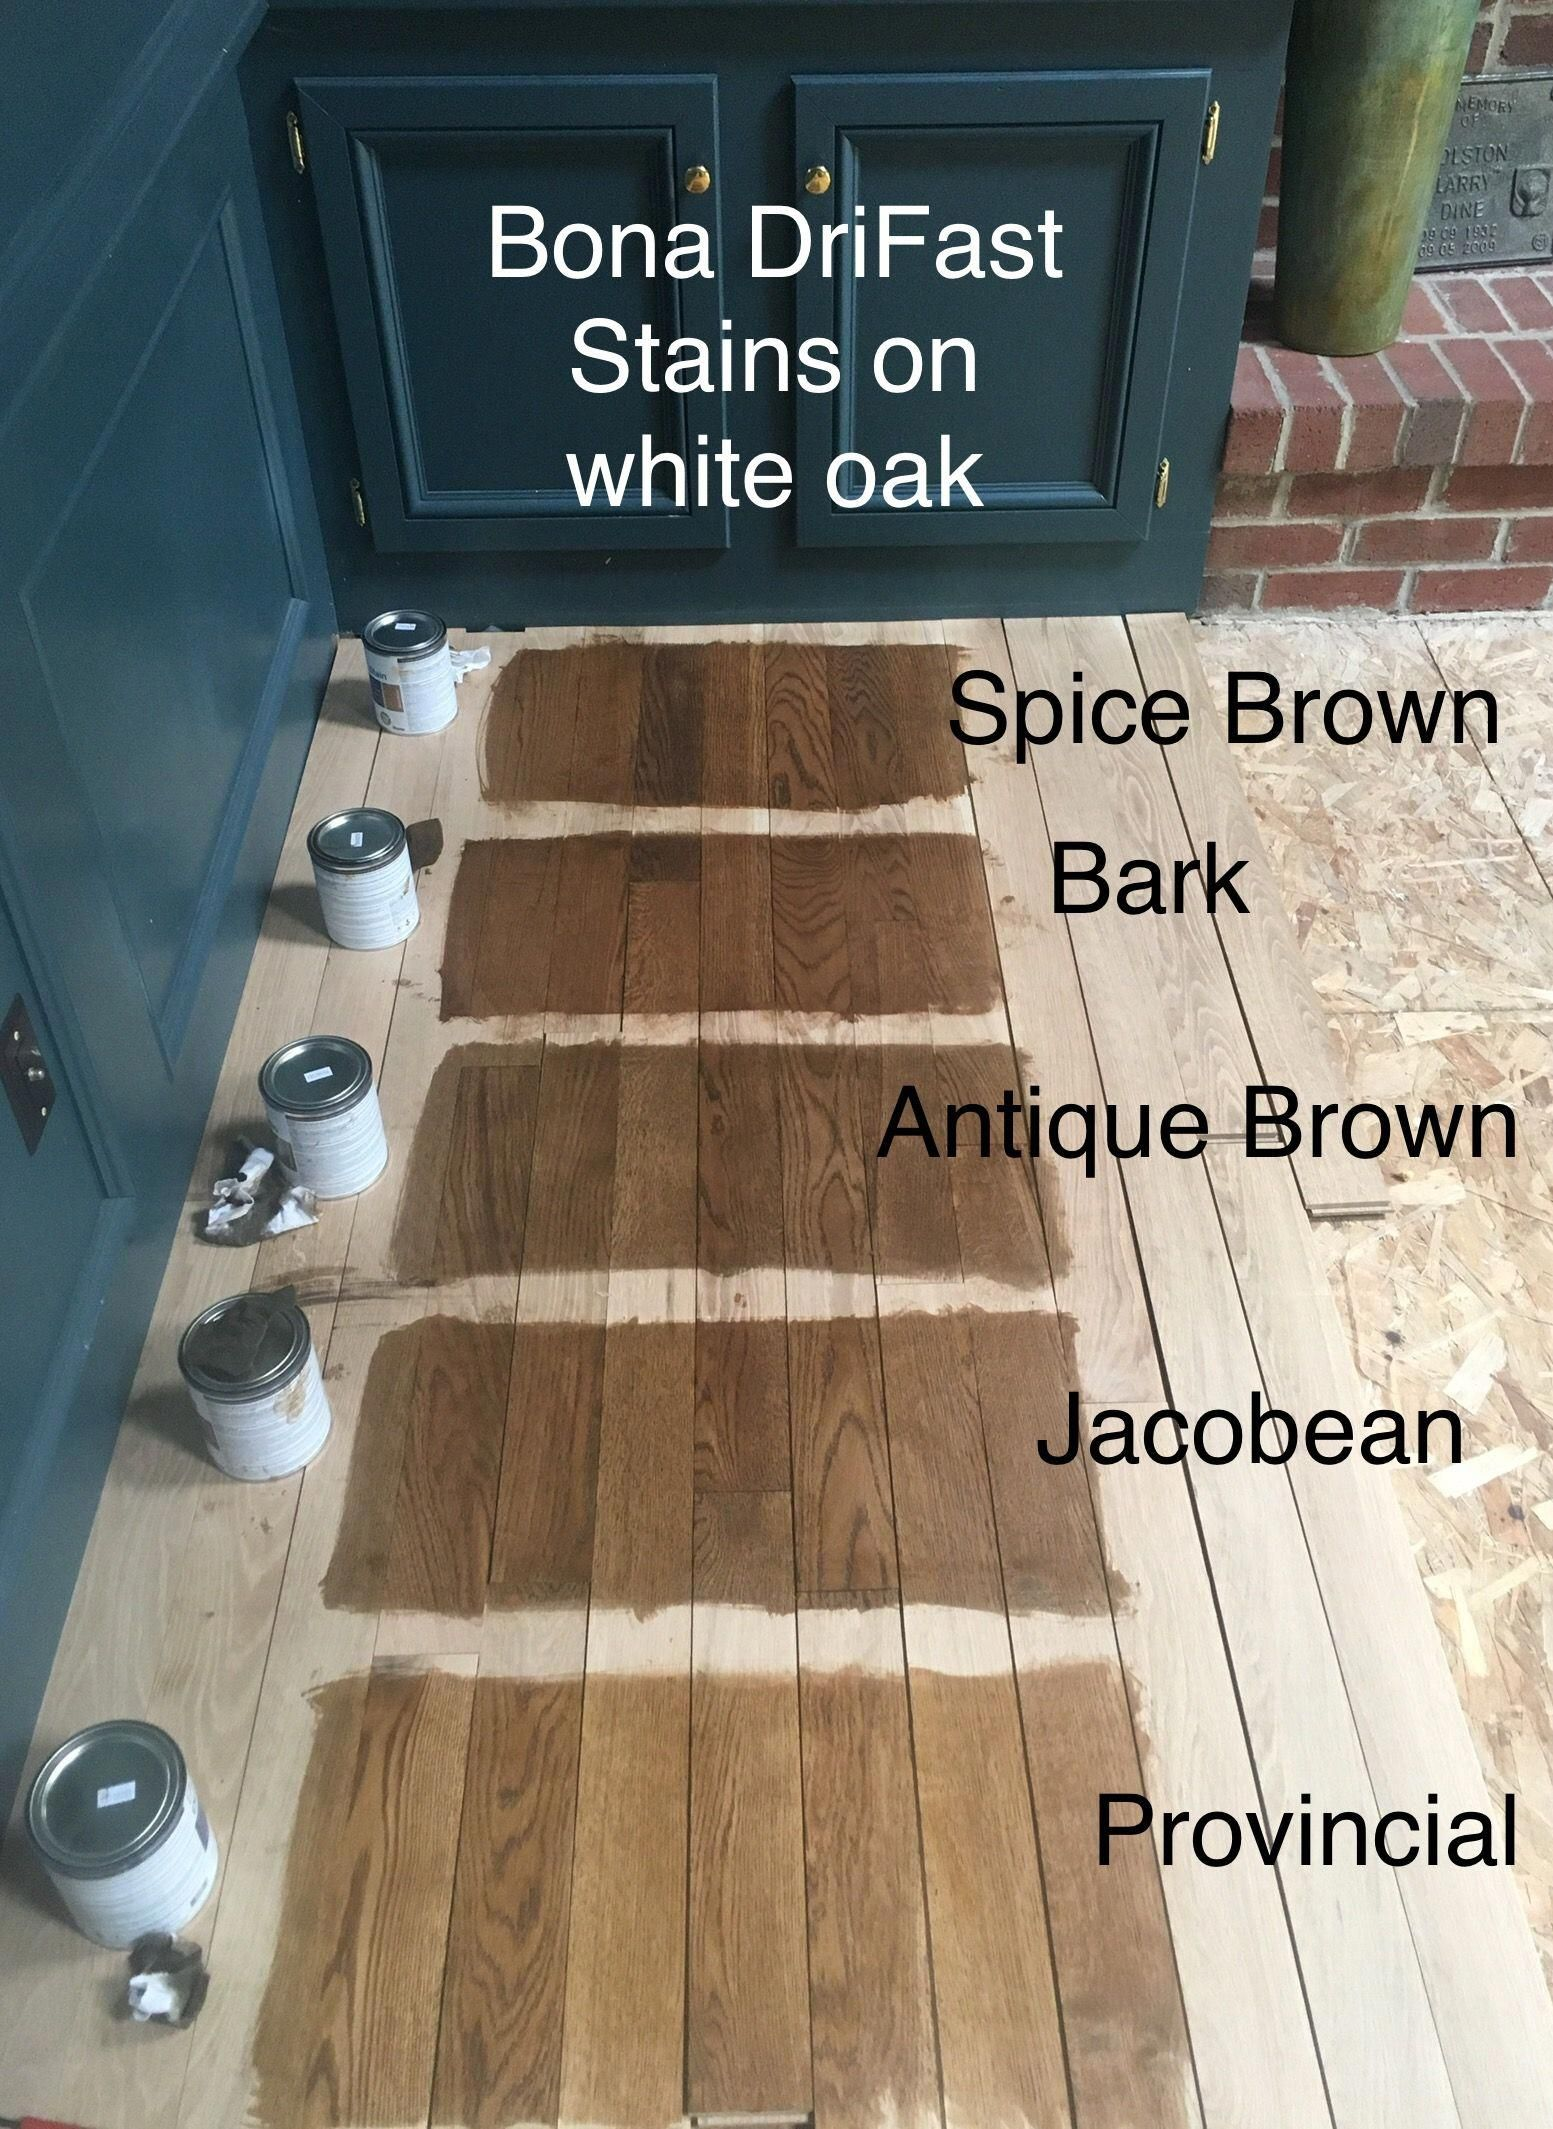 One Coat Of Each Bona Drifast Stain On White Oak Hardwoodflooringbest Oak Floor Stains White Oak Floors White Oak Hardwood Floors Stain Colors